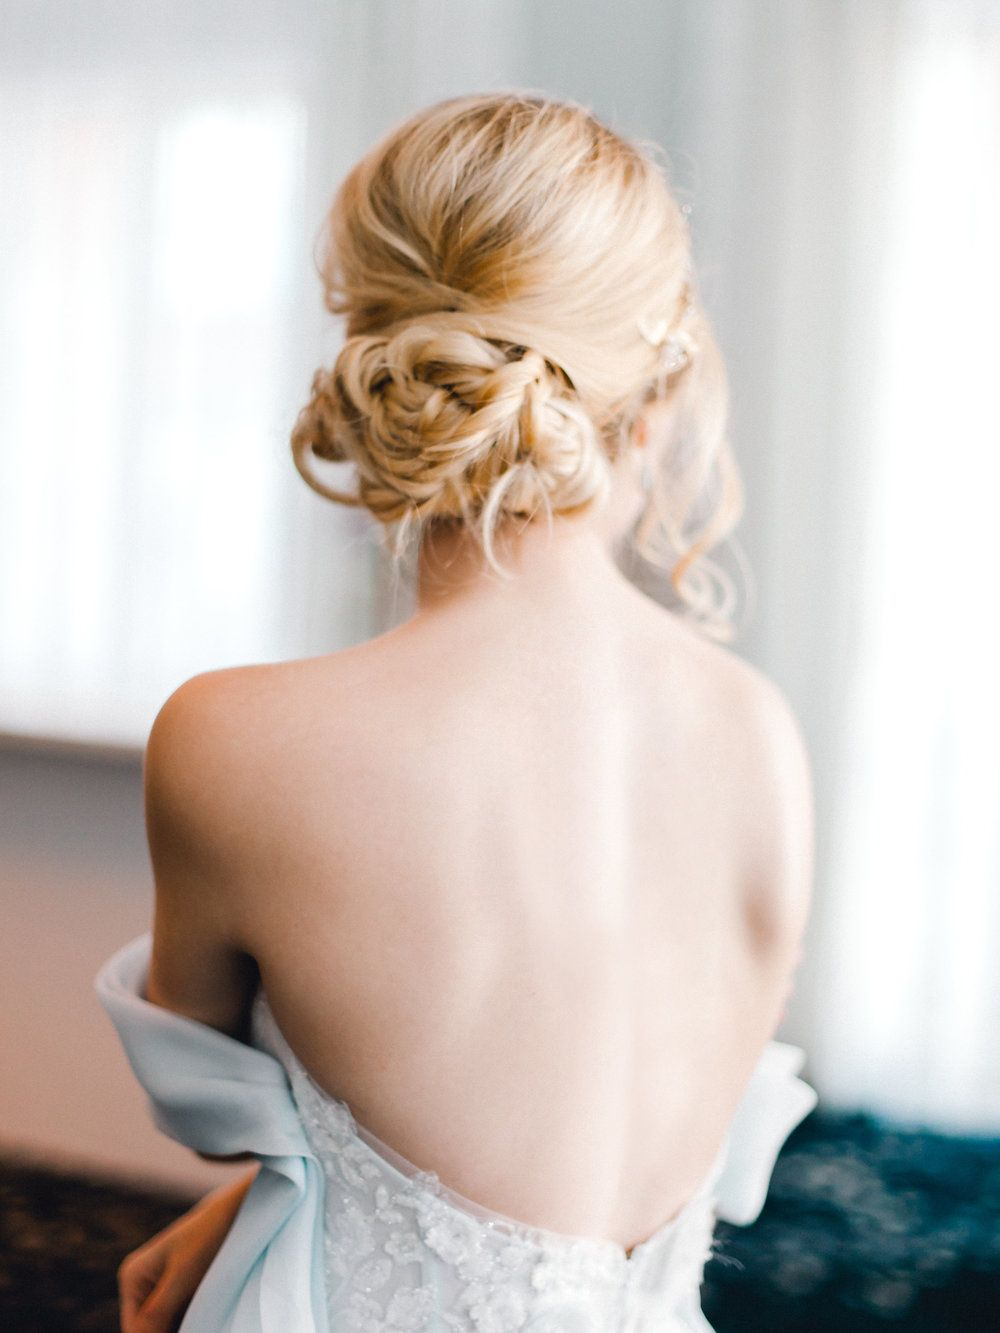 your wedding hair & makeup questions: answered by the expert